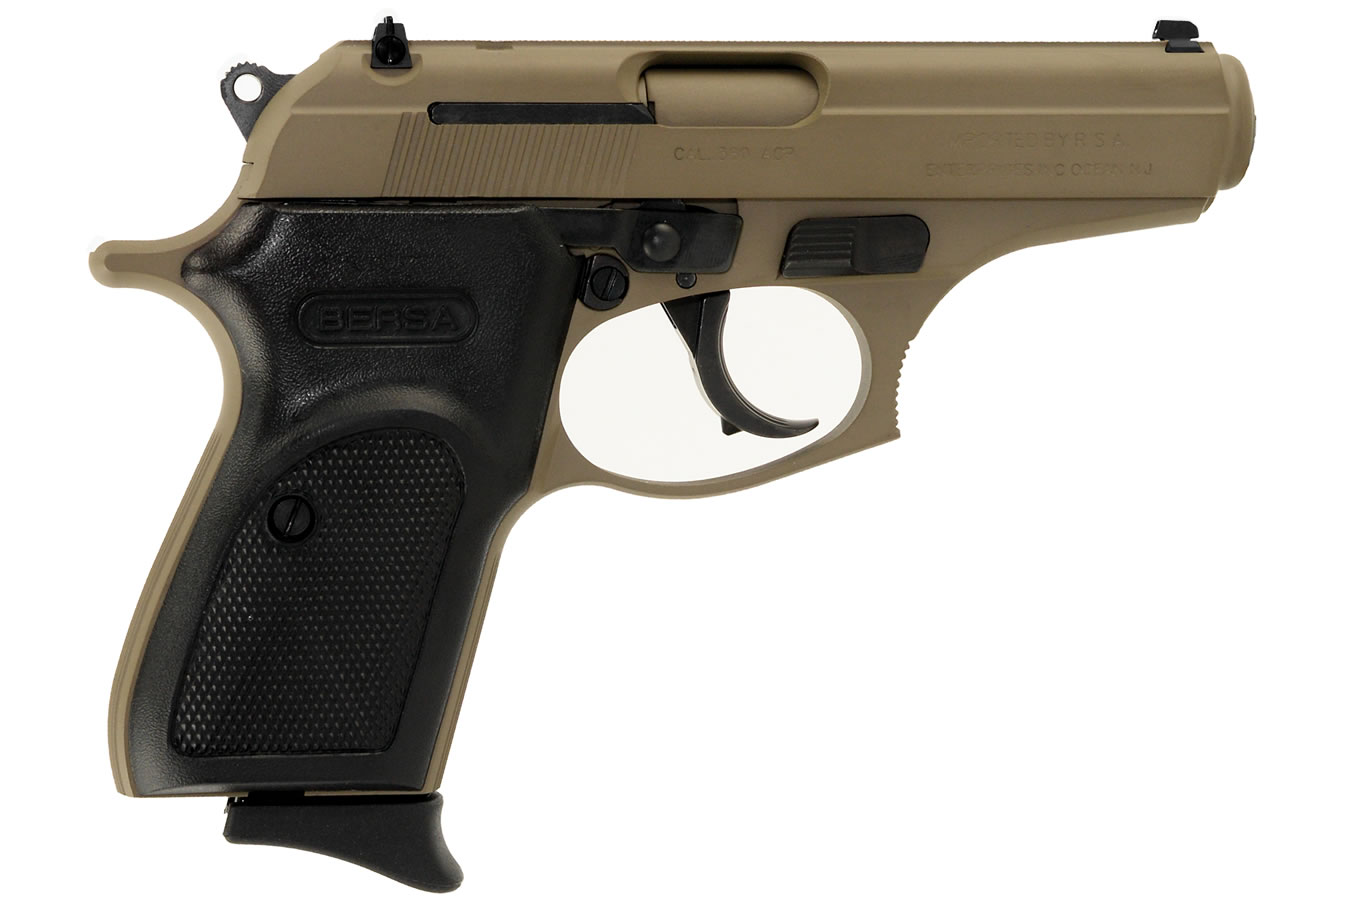 380 bersa thunder dark fde pistol earth carry flat sportsman guns conceal gun superstore firearms outdoor outdoors